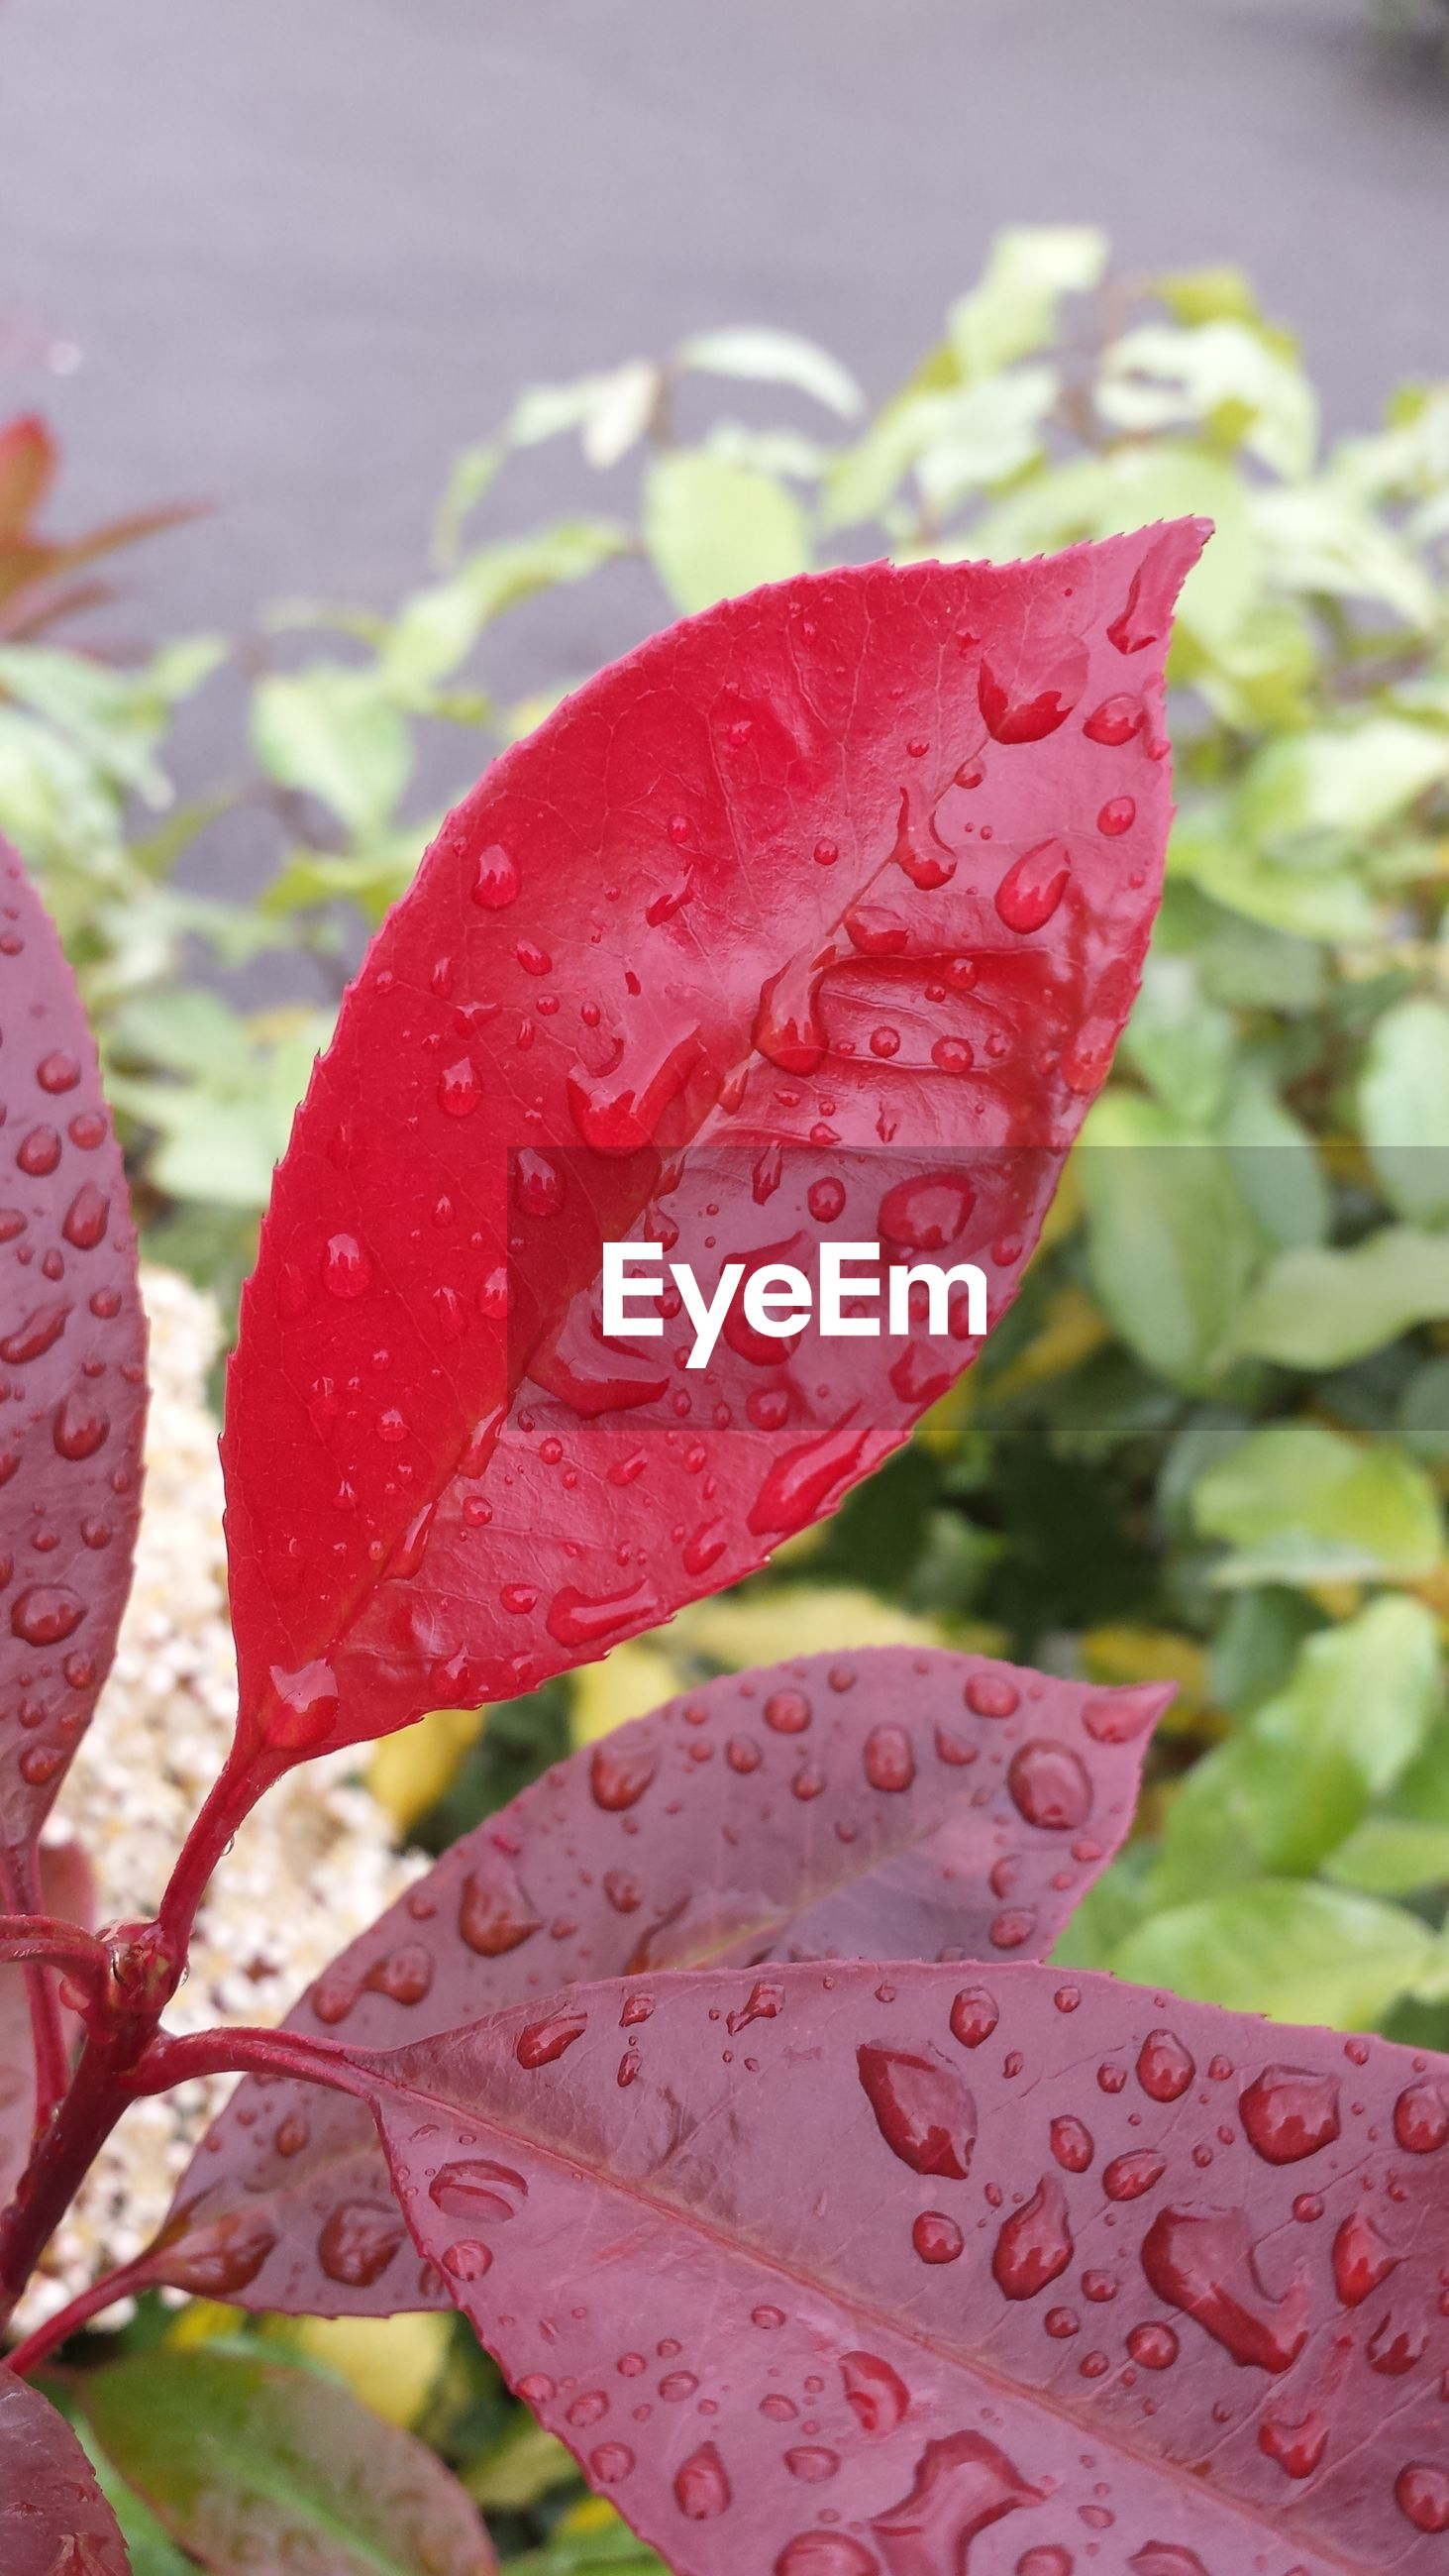 red, close-up, leaf, focus on foreground, freshness, nature, selective focus, no people, day, pink color, growth, vibrant color, season, autumn, beauty in nature, outdoors, heart shape, pattern, fragility, leaves